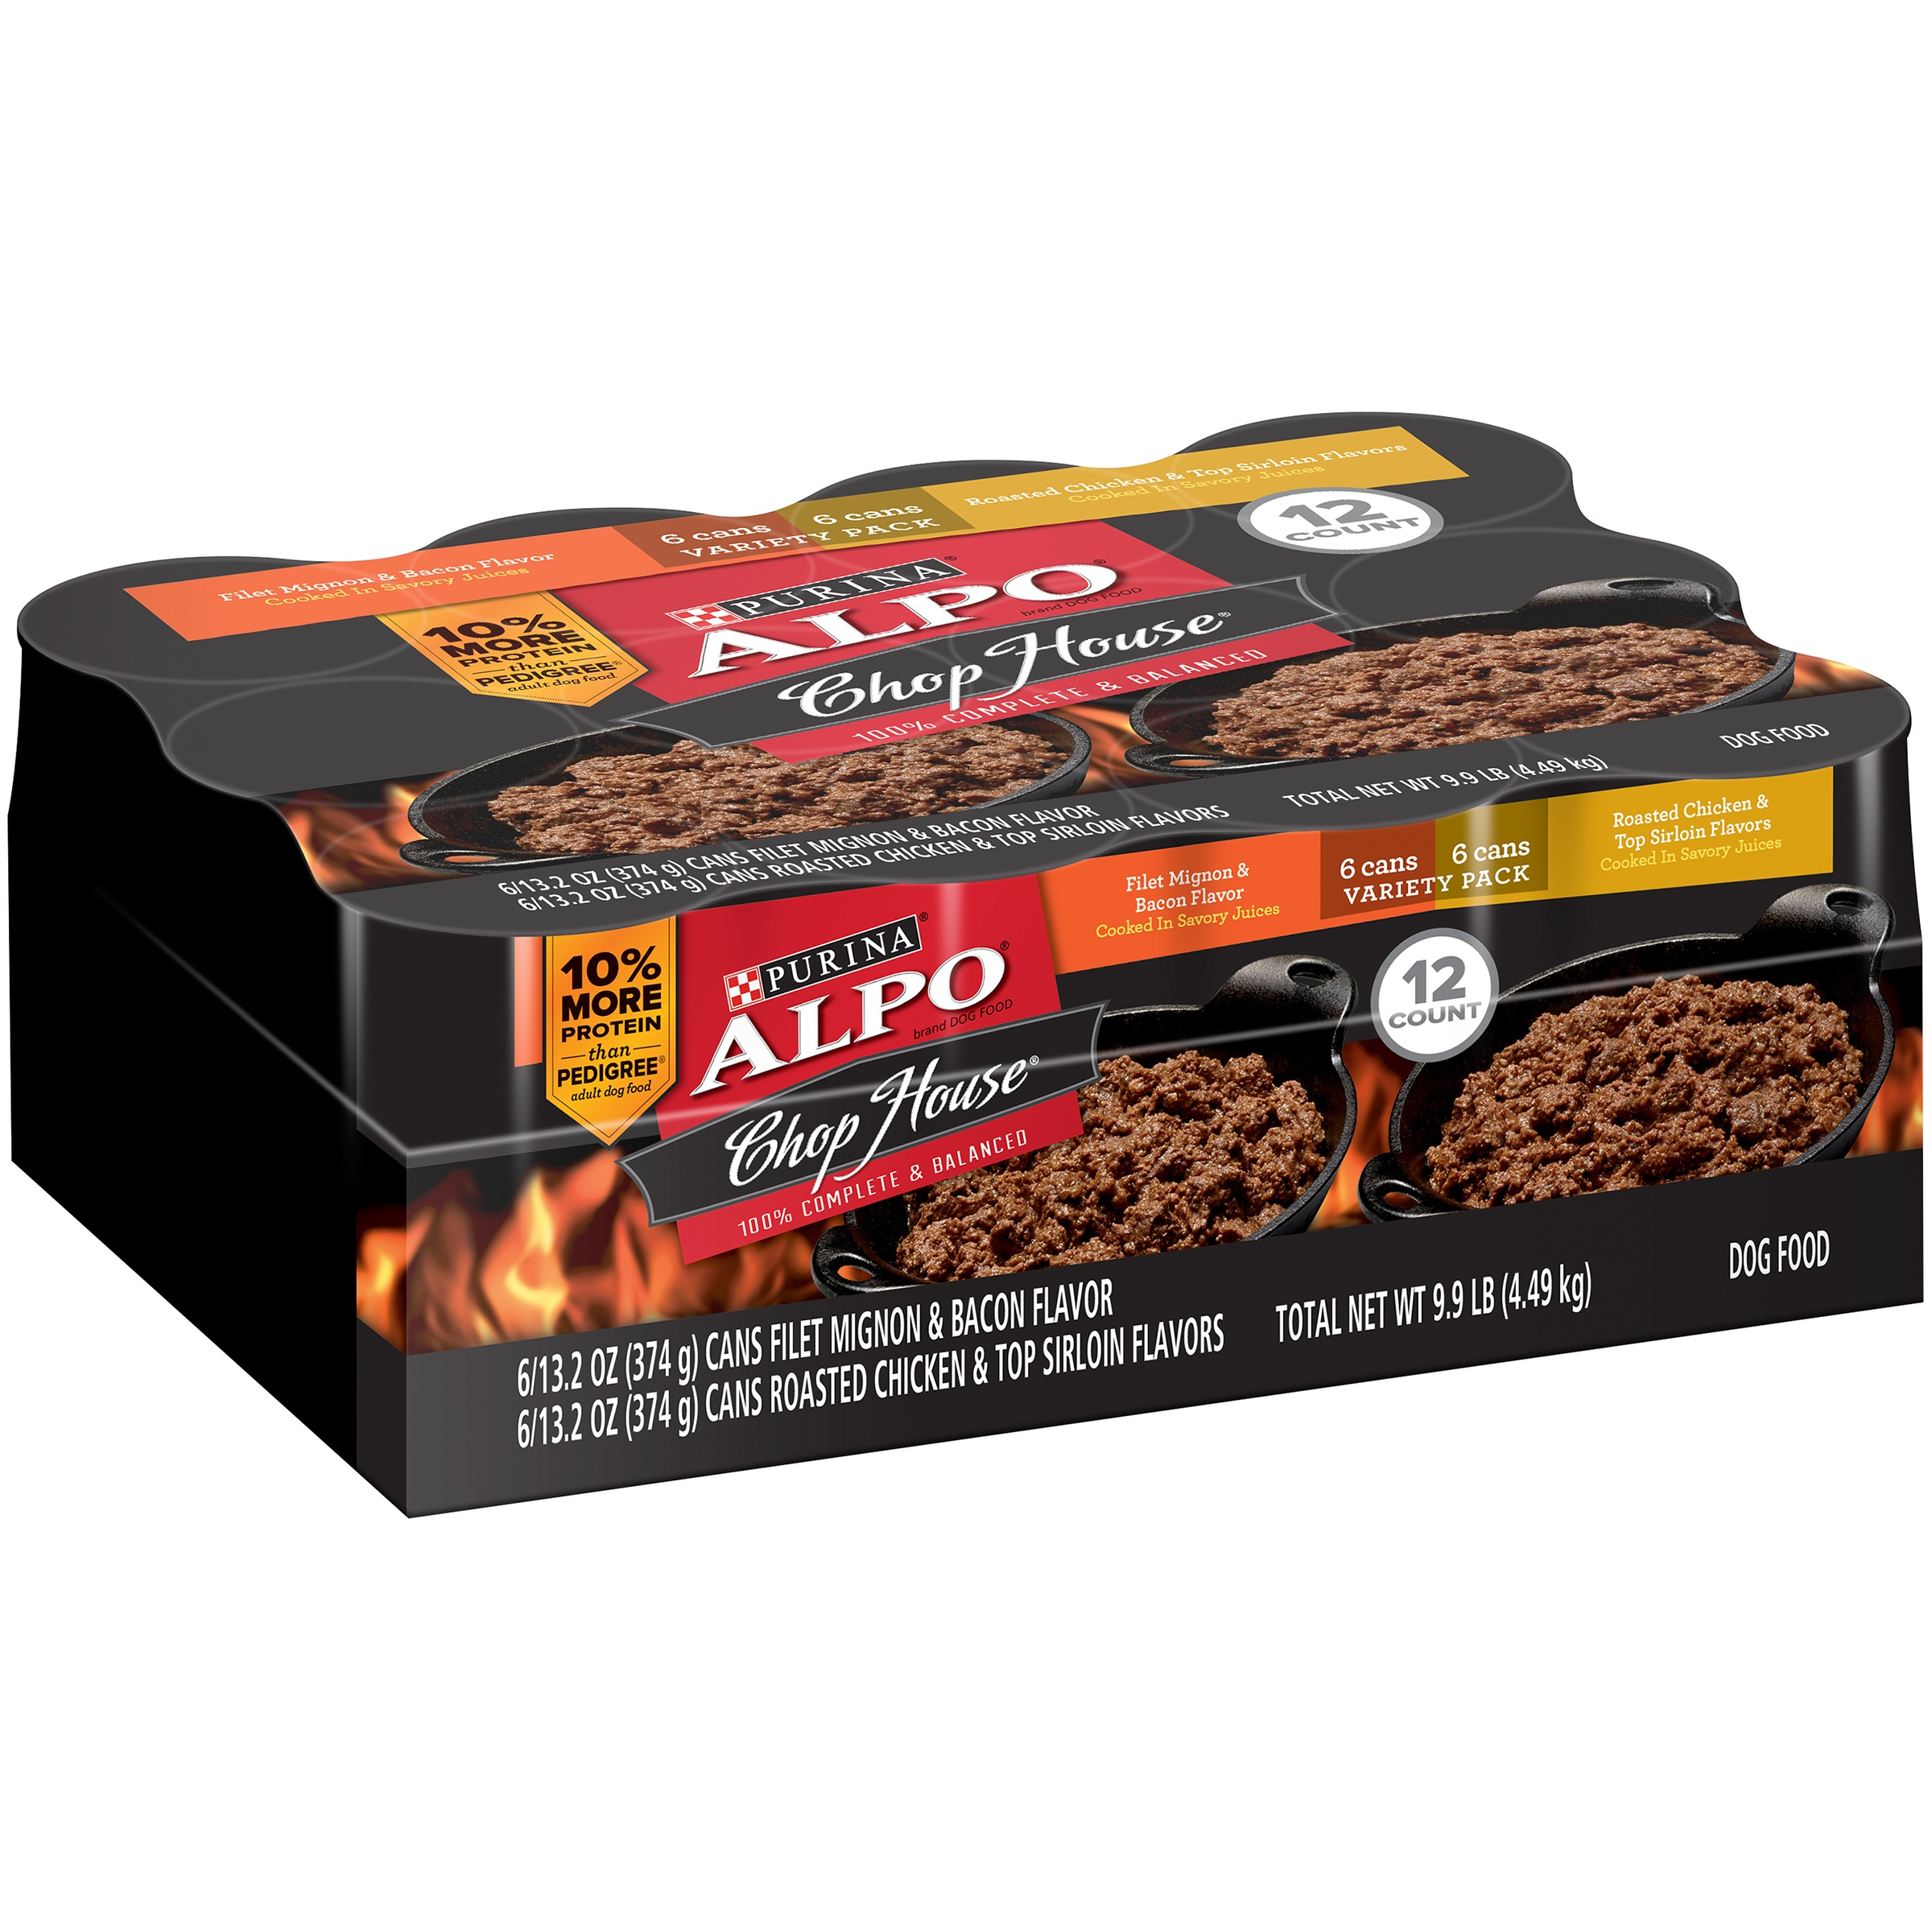 Purina ALPO Chop House Variety Pack Dog Food 12-13.2 oz. Cans